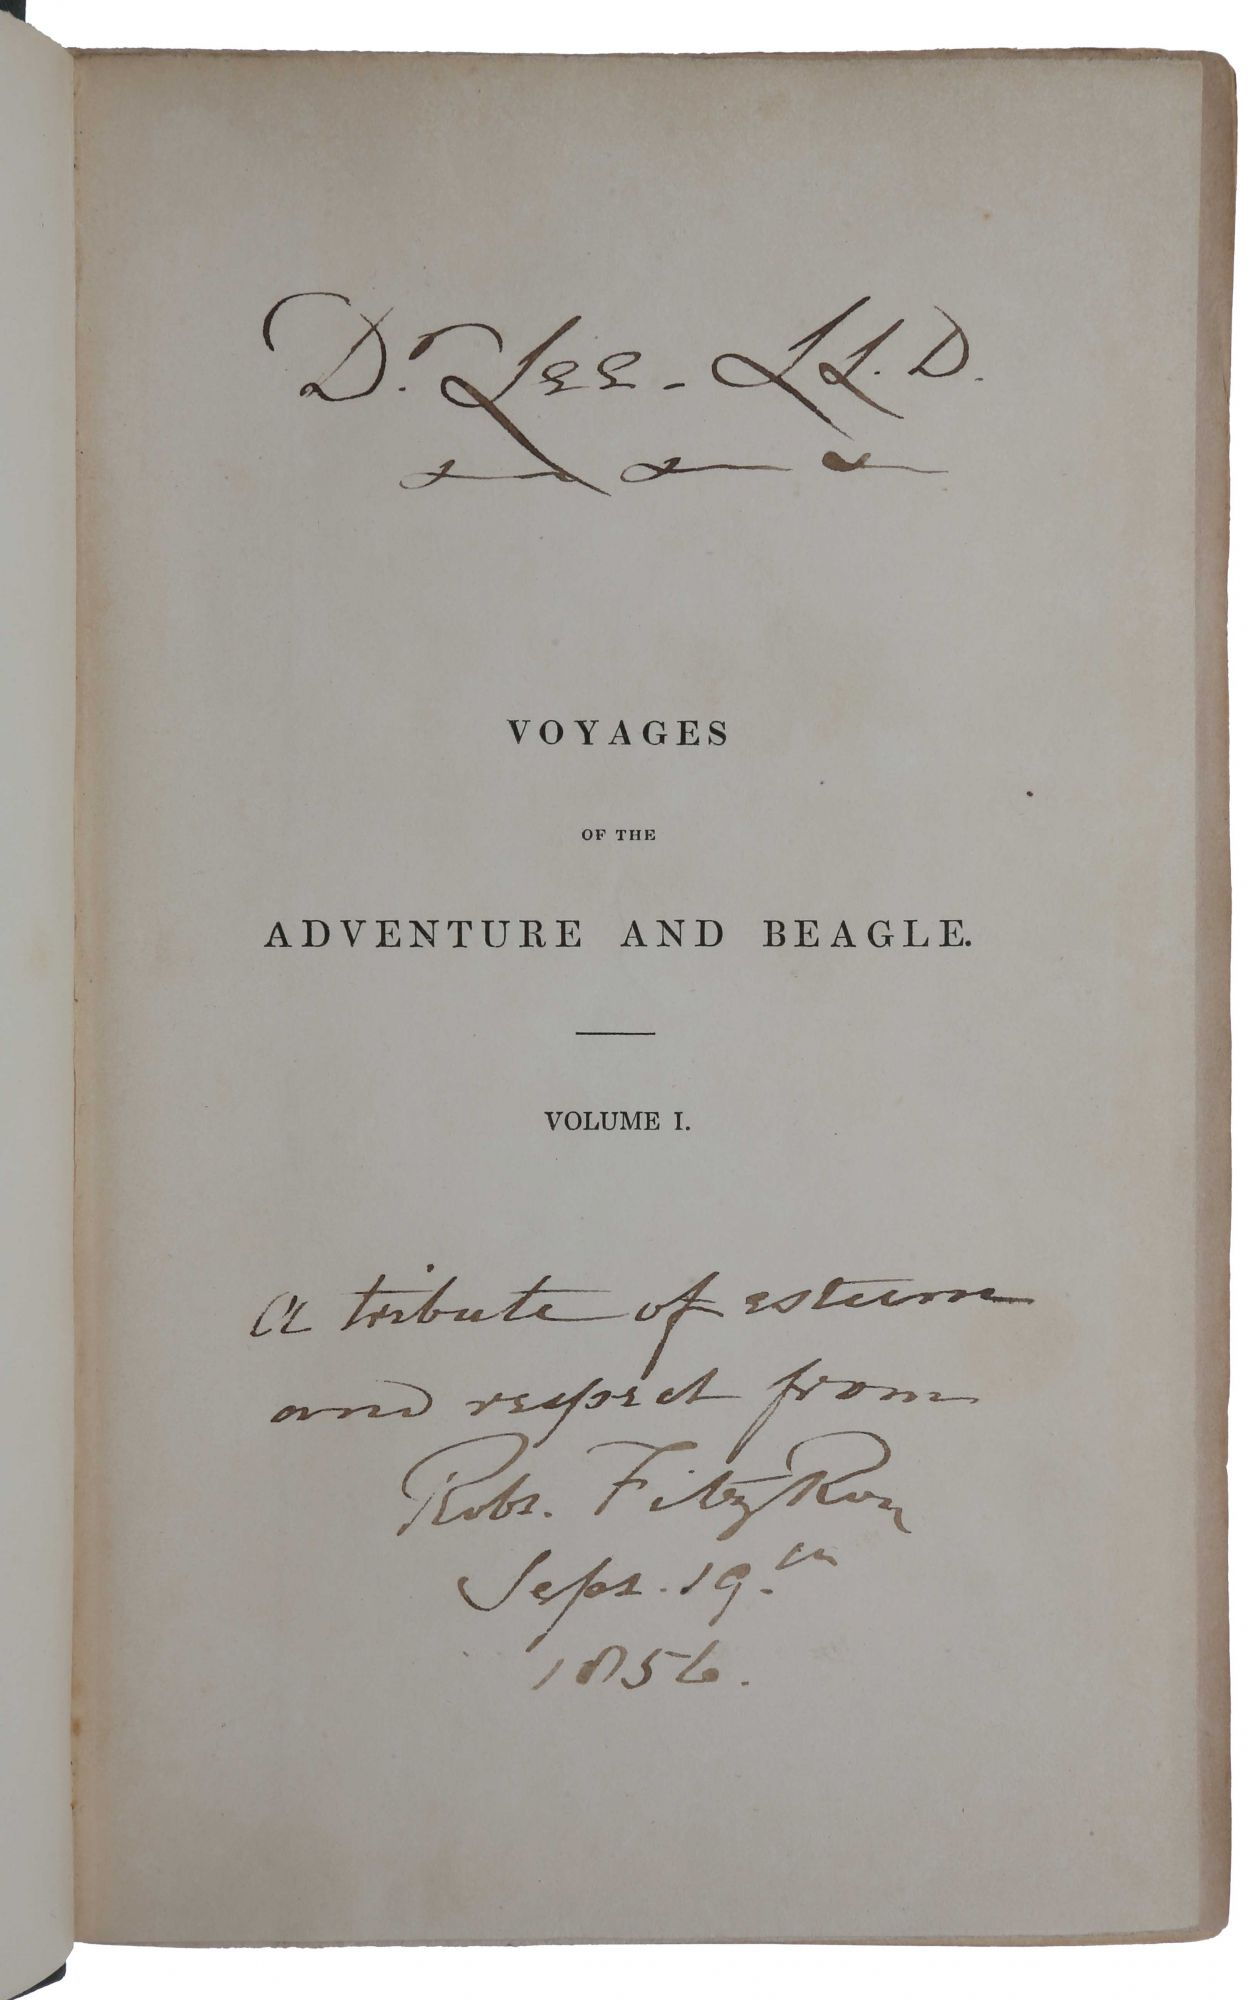 Narrative of the Surveying Voyages of His Majesty's Ships Adventure and Beagle, between the Years 1826 and 1836, describing their Examination of the Southern Shores of South America, and the Beagle's Circumnavigation of the Globe. Charles DARWIN, Robert FITZROY.